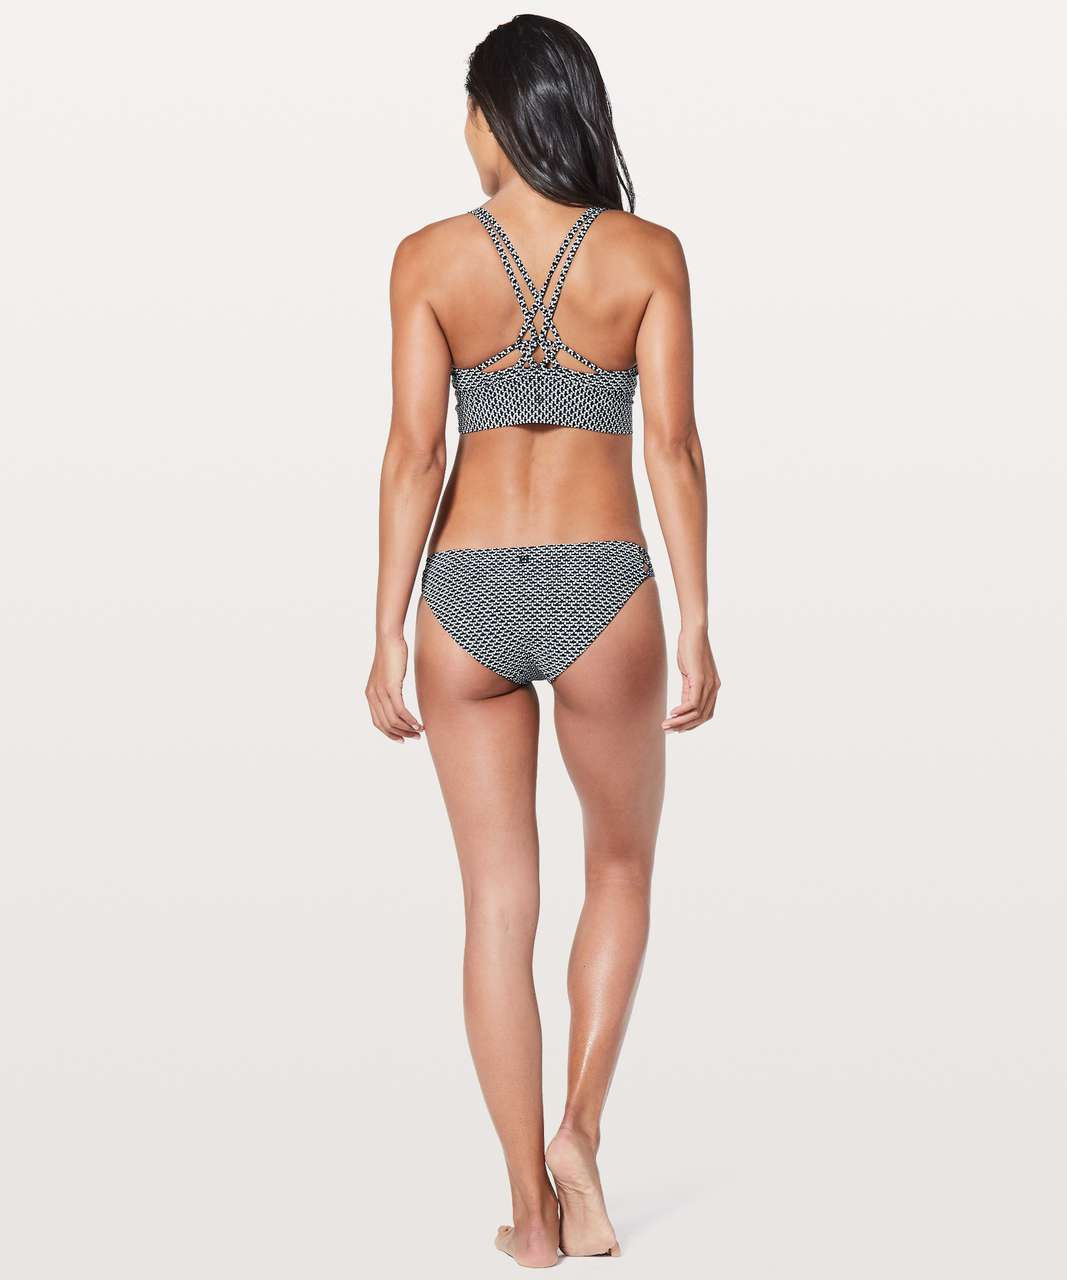 c239b75a1 Lululemon Coastline Top - Monochromic Black Emboss - lulu fanatics